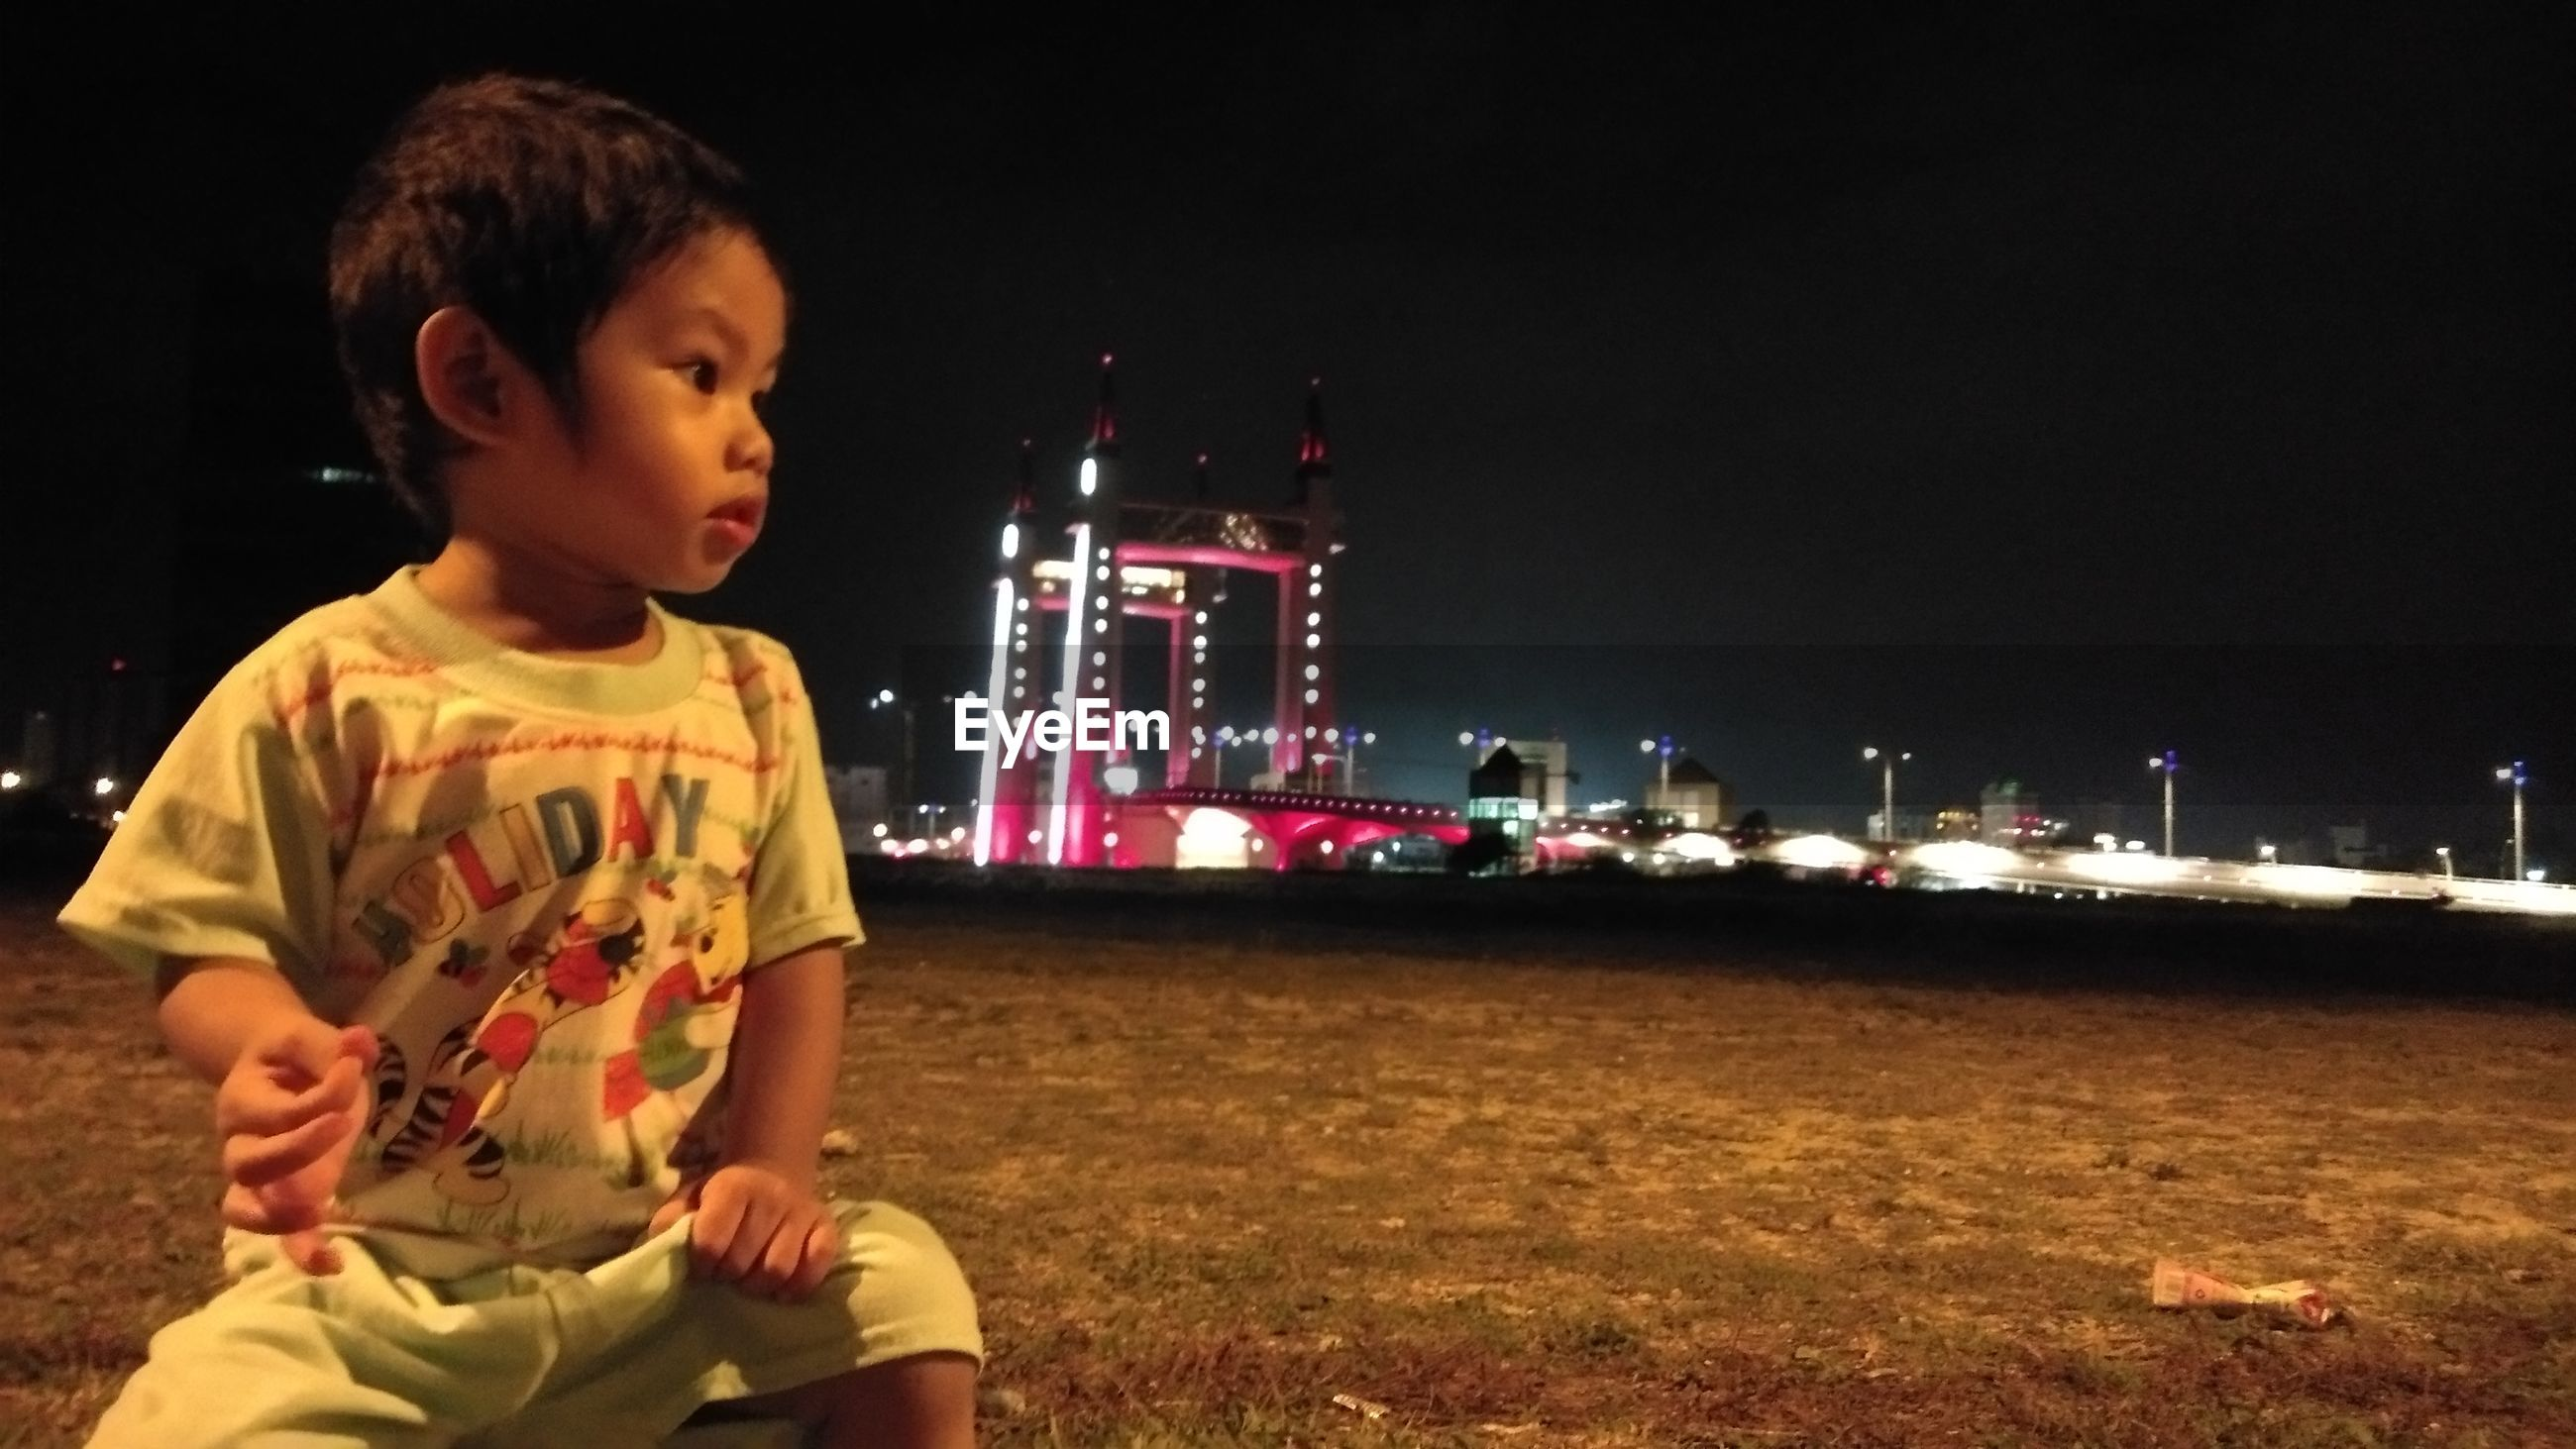 BOY LOOKING AWAY WHILE SITTING ON LAND